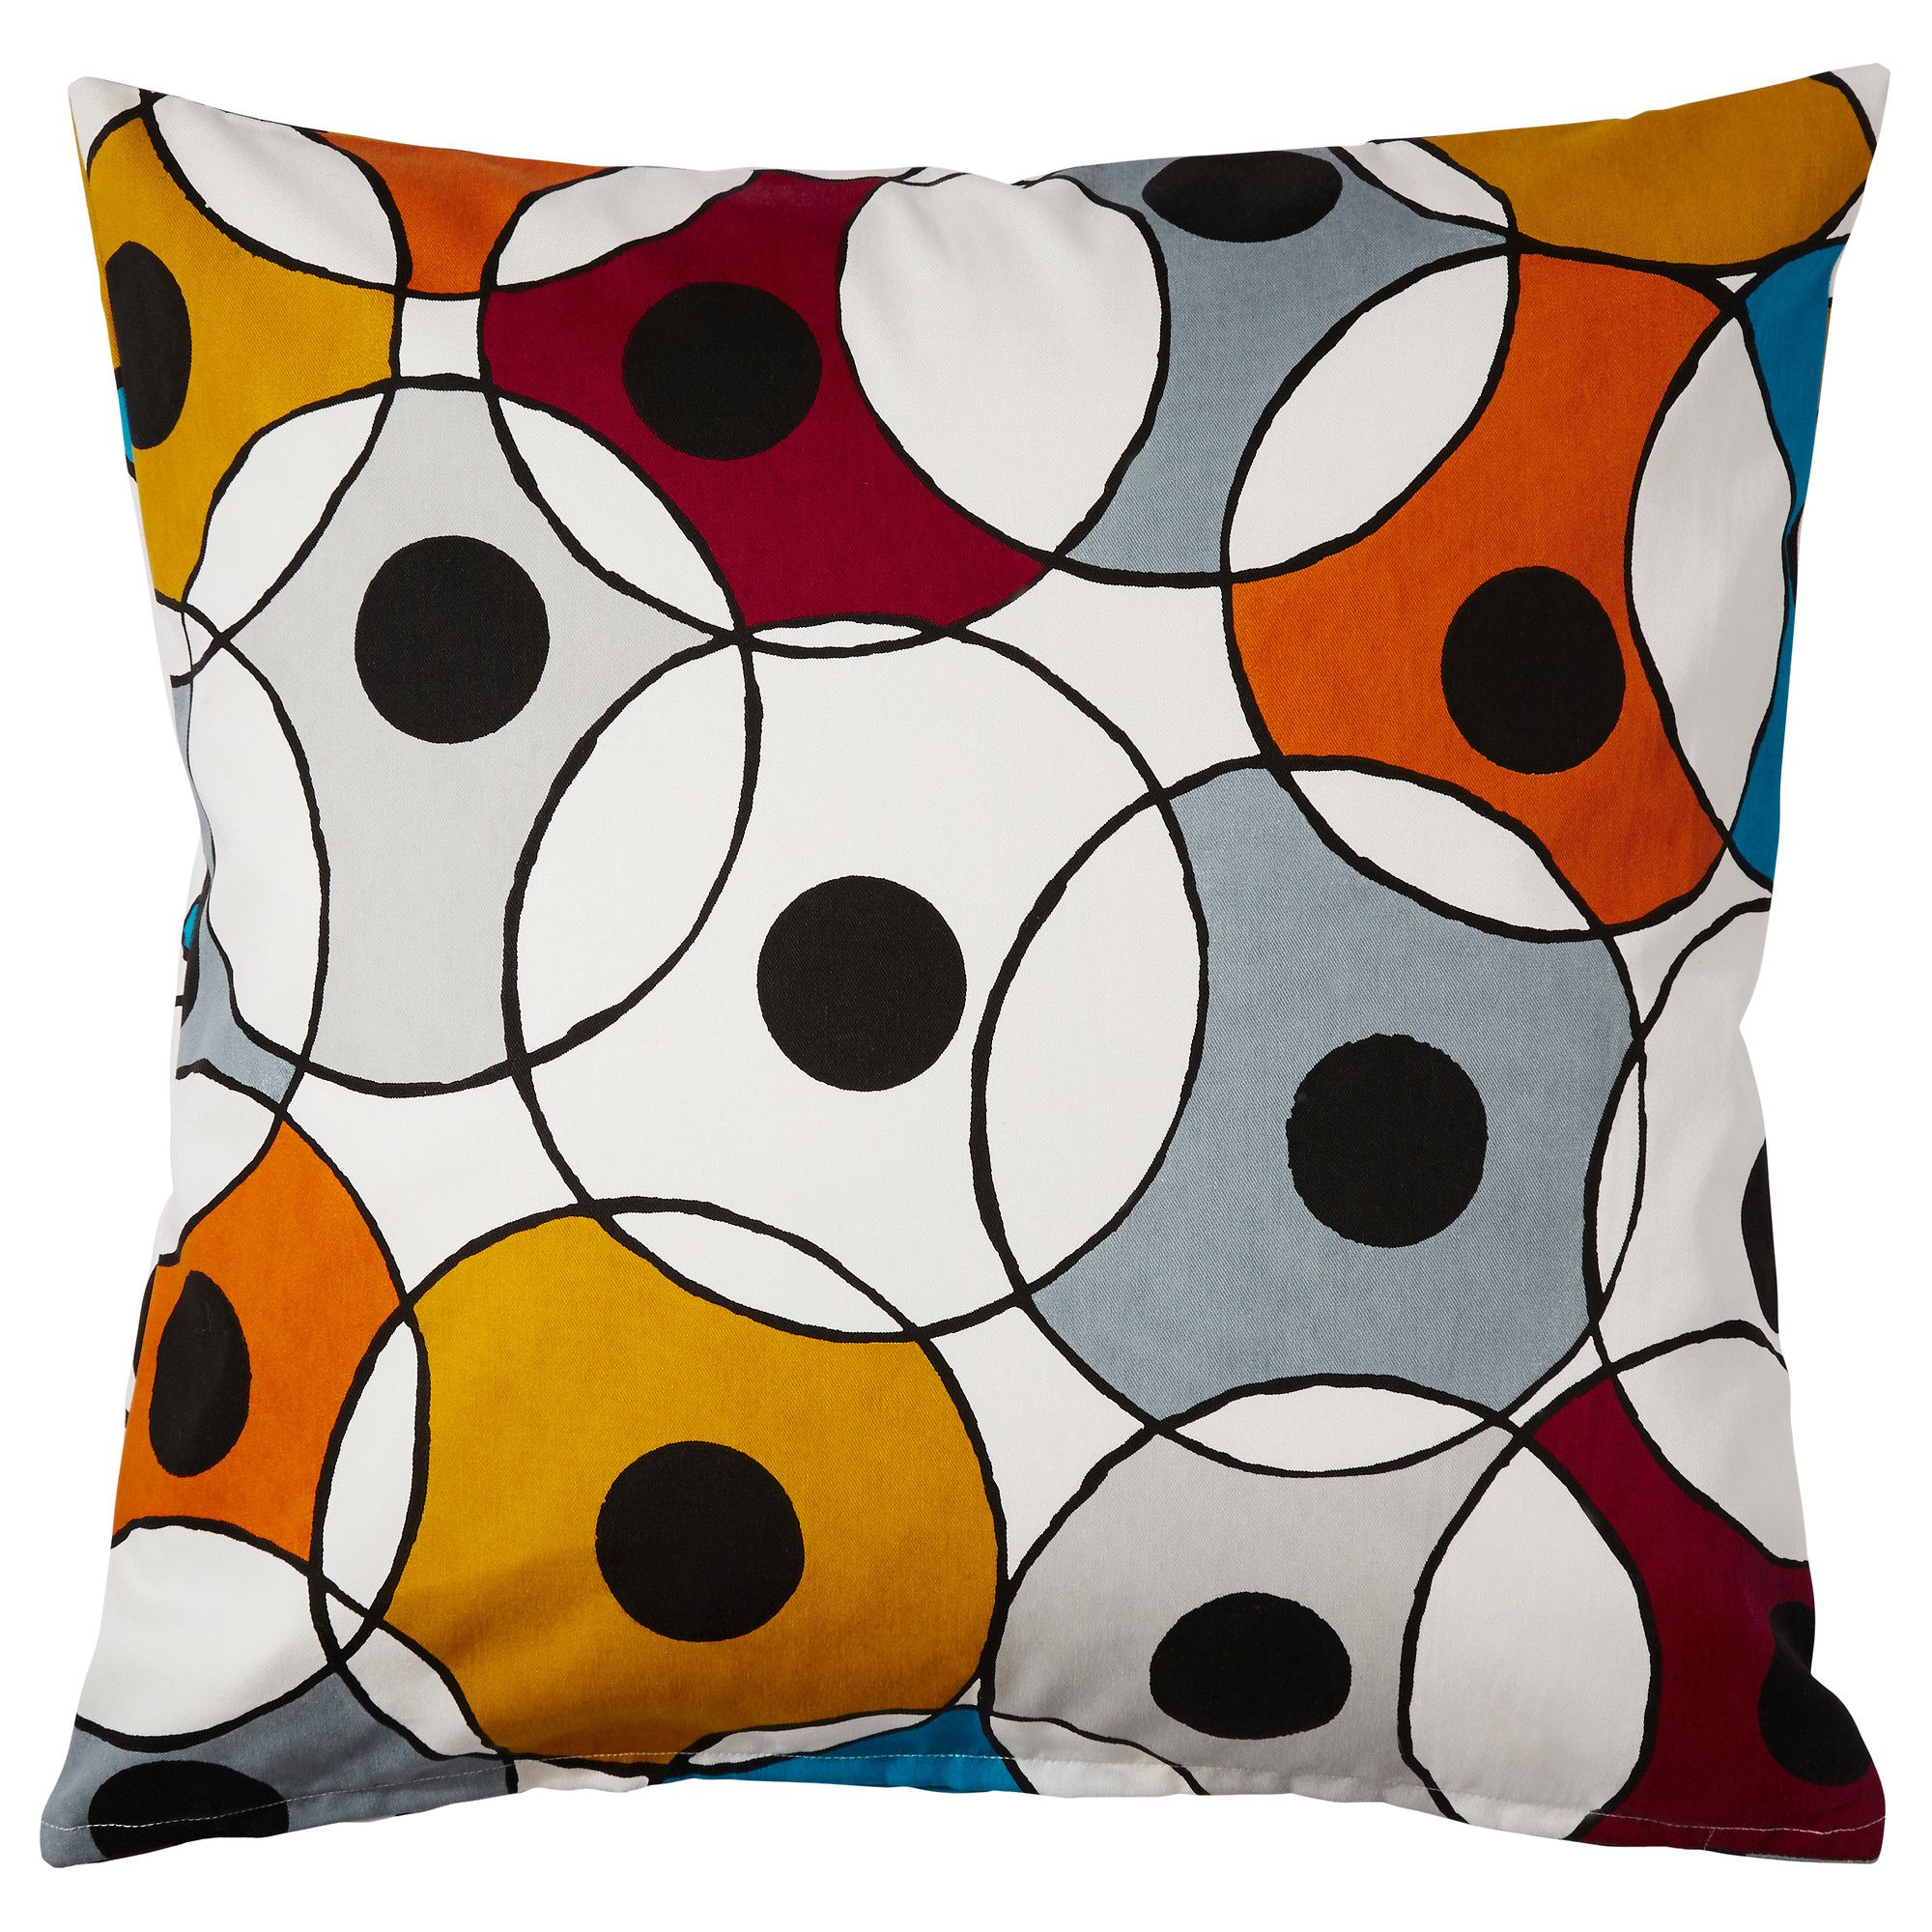 Refresh any room with colorful and bold pillows The DVRGPALM